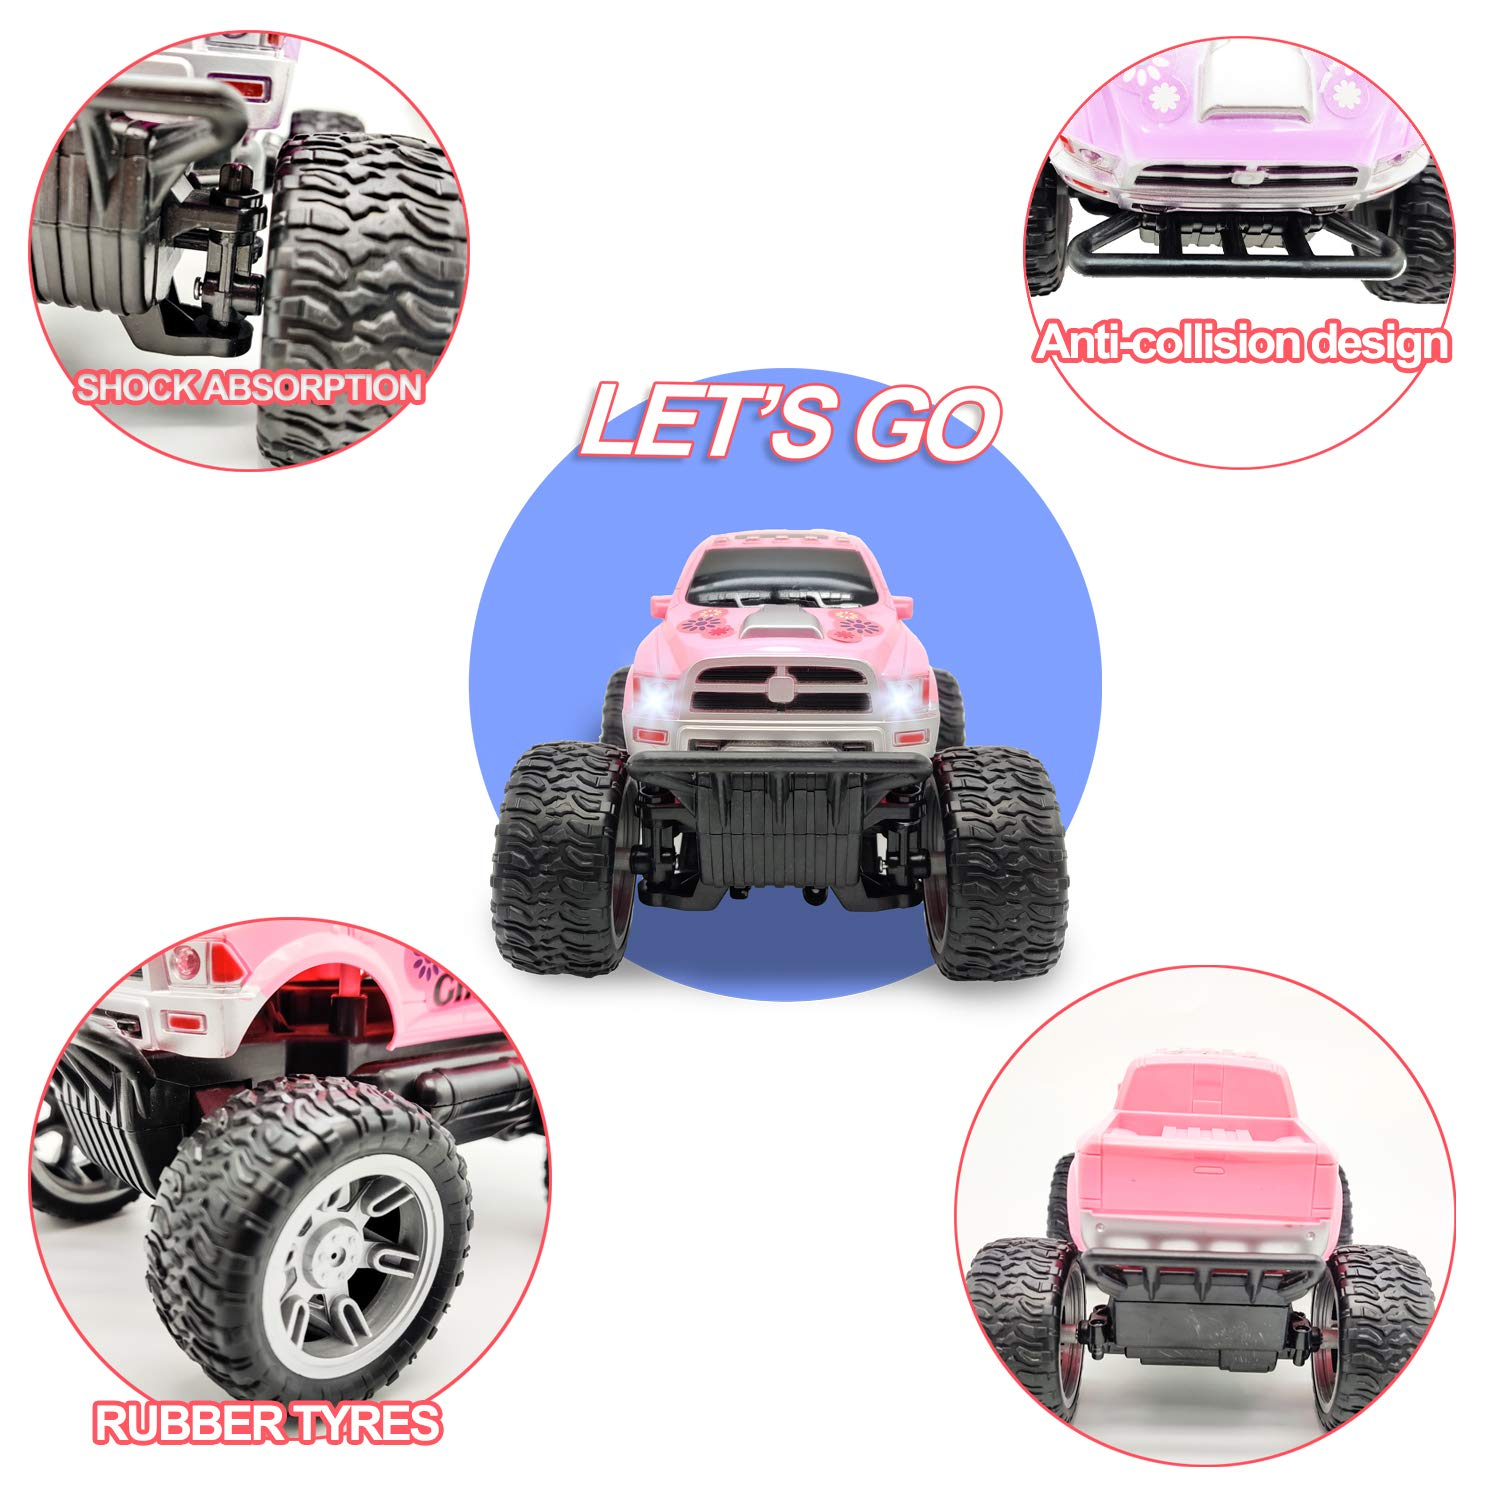 Pink Remote Control Jeep Car Toy for Girls Kids Toddlers Birthday Christmas Gifts - Great Toy RC Car for Girls - wiihuu